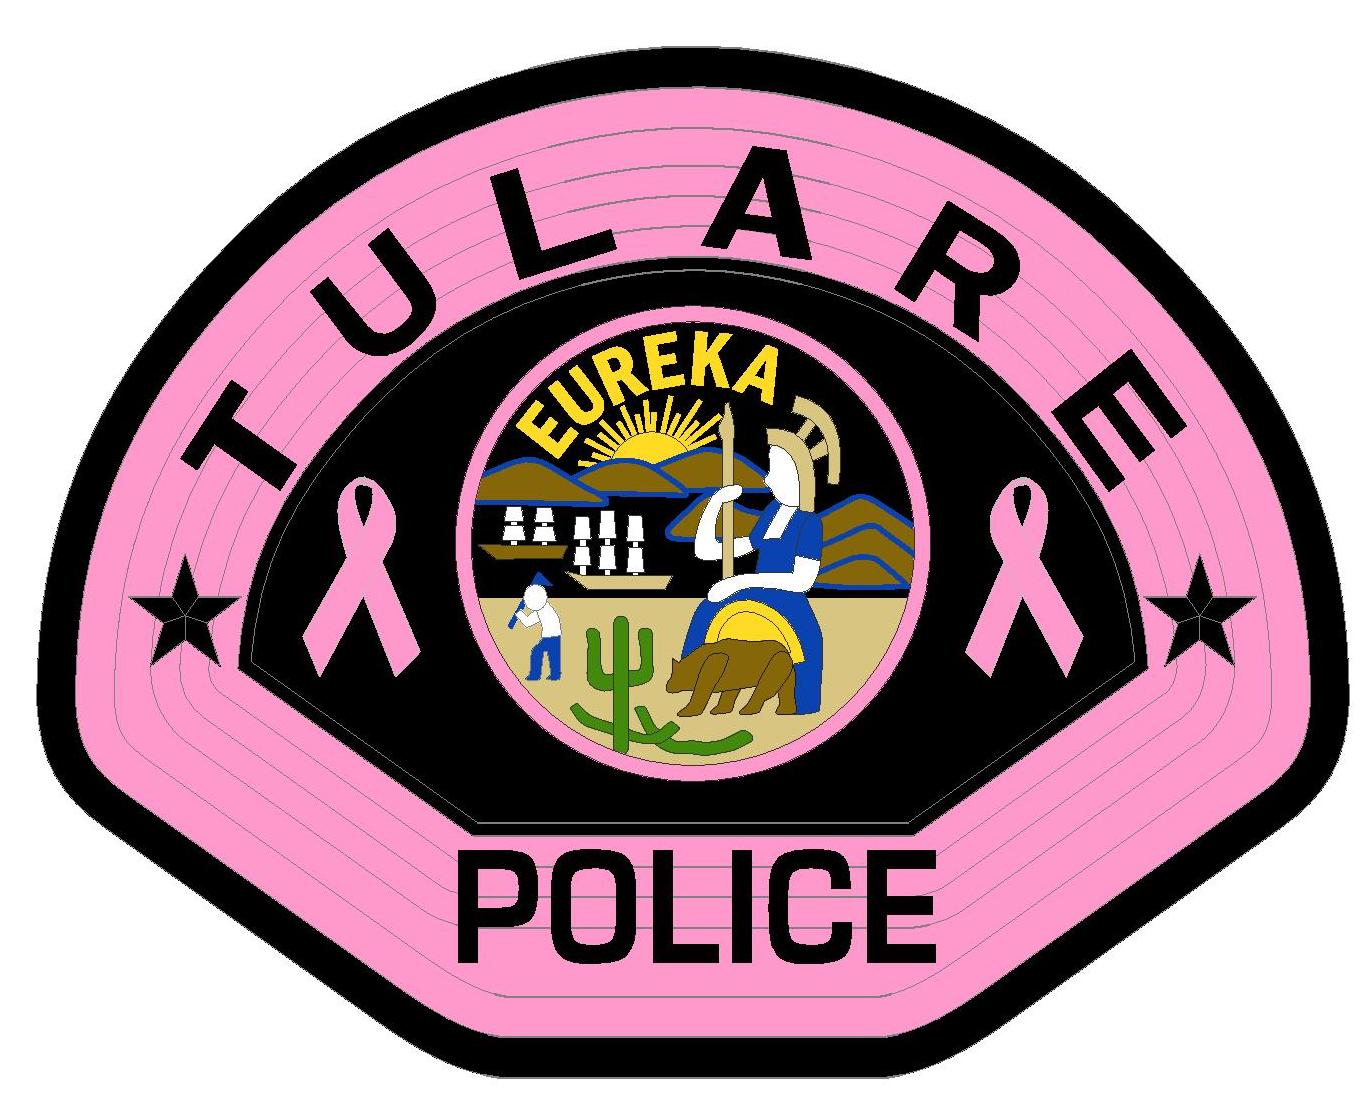 TULARE POLICE (CA) - PINK PATCH (1)-page-001.jpg